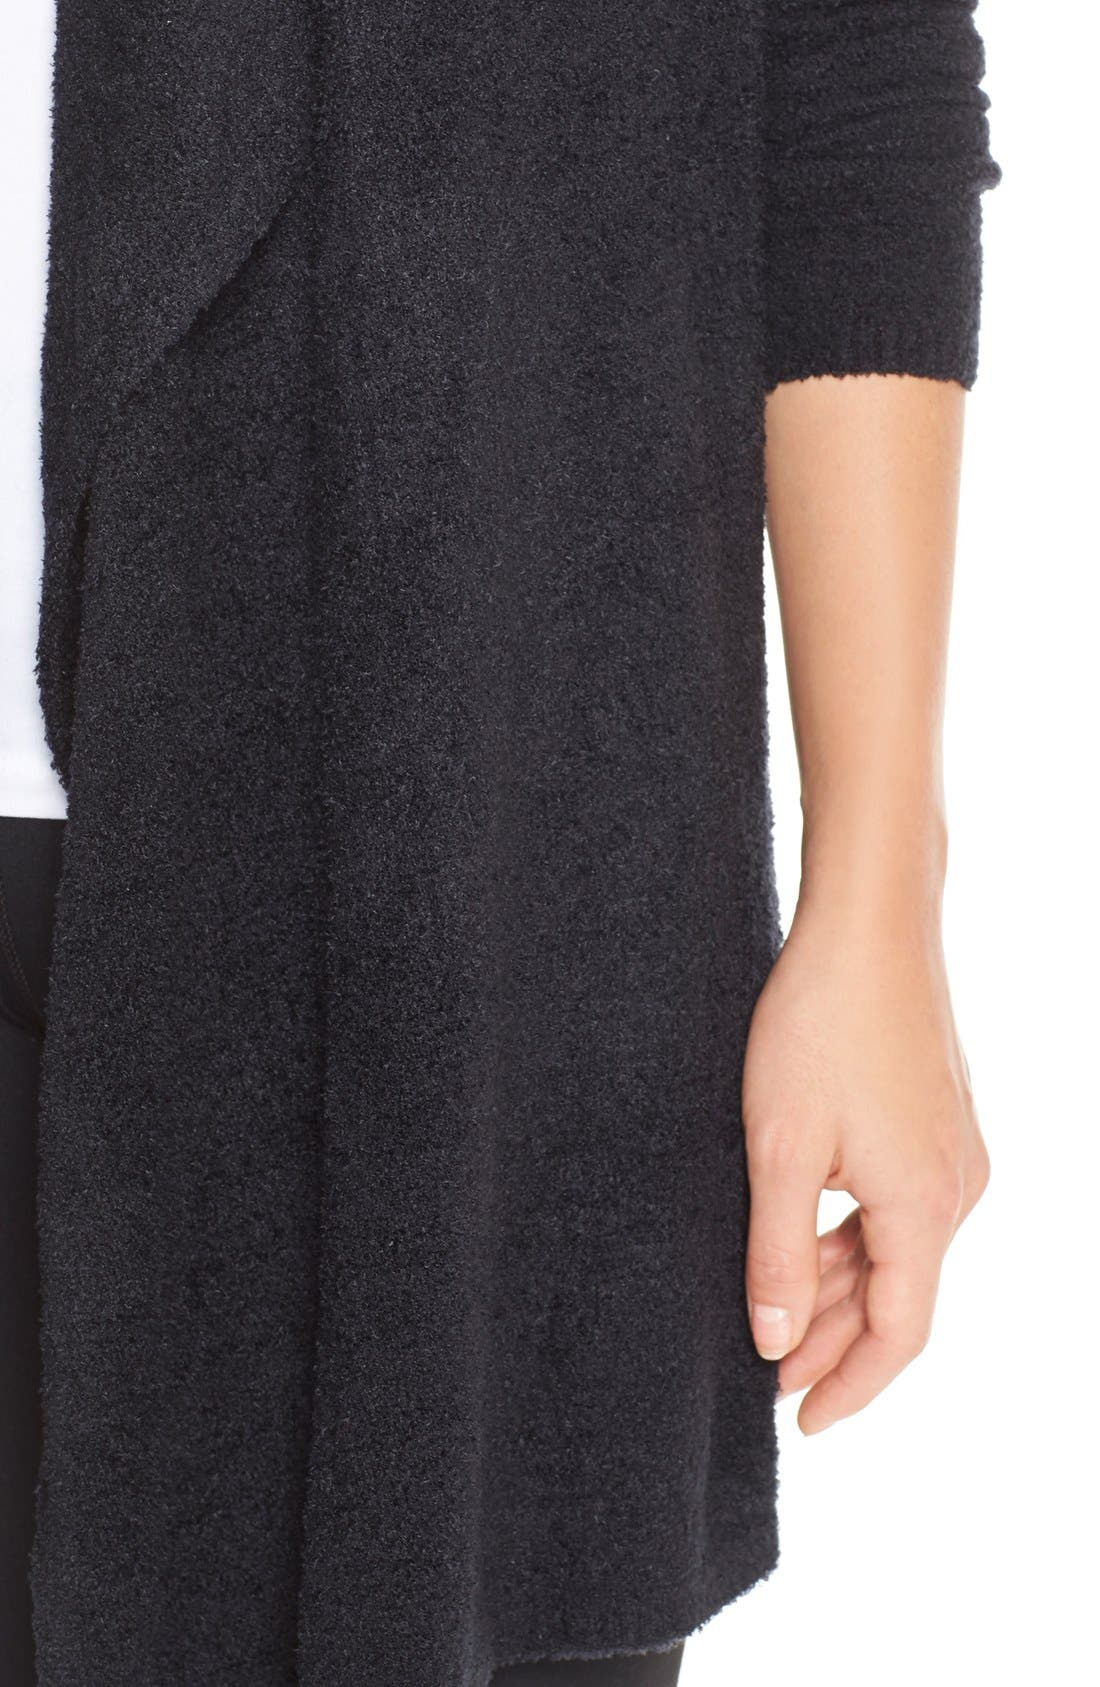 CozyChic Lite<sup>®</sup> Calypso Wrap Cardigan,                             Alternate thumbnail 8, color,                             BLACK